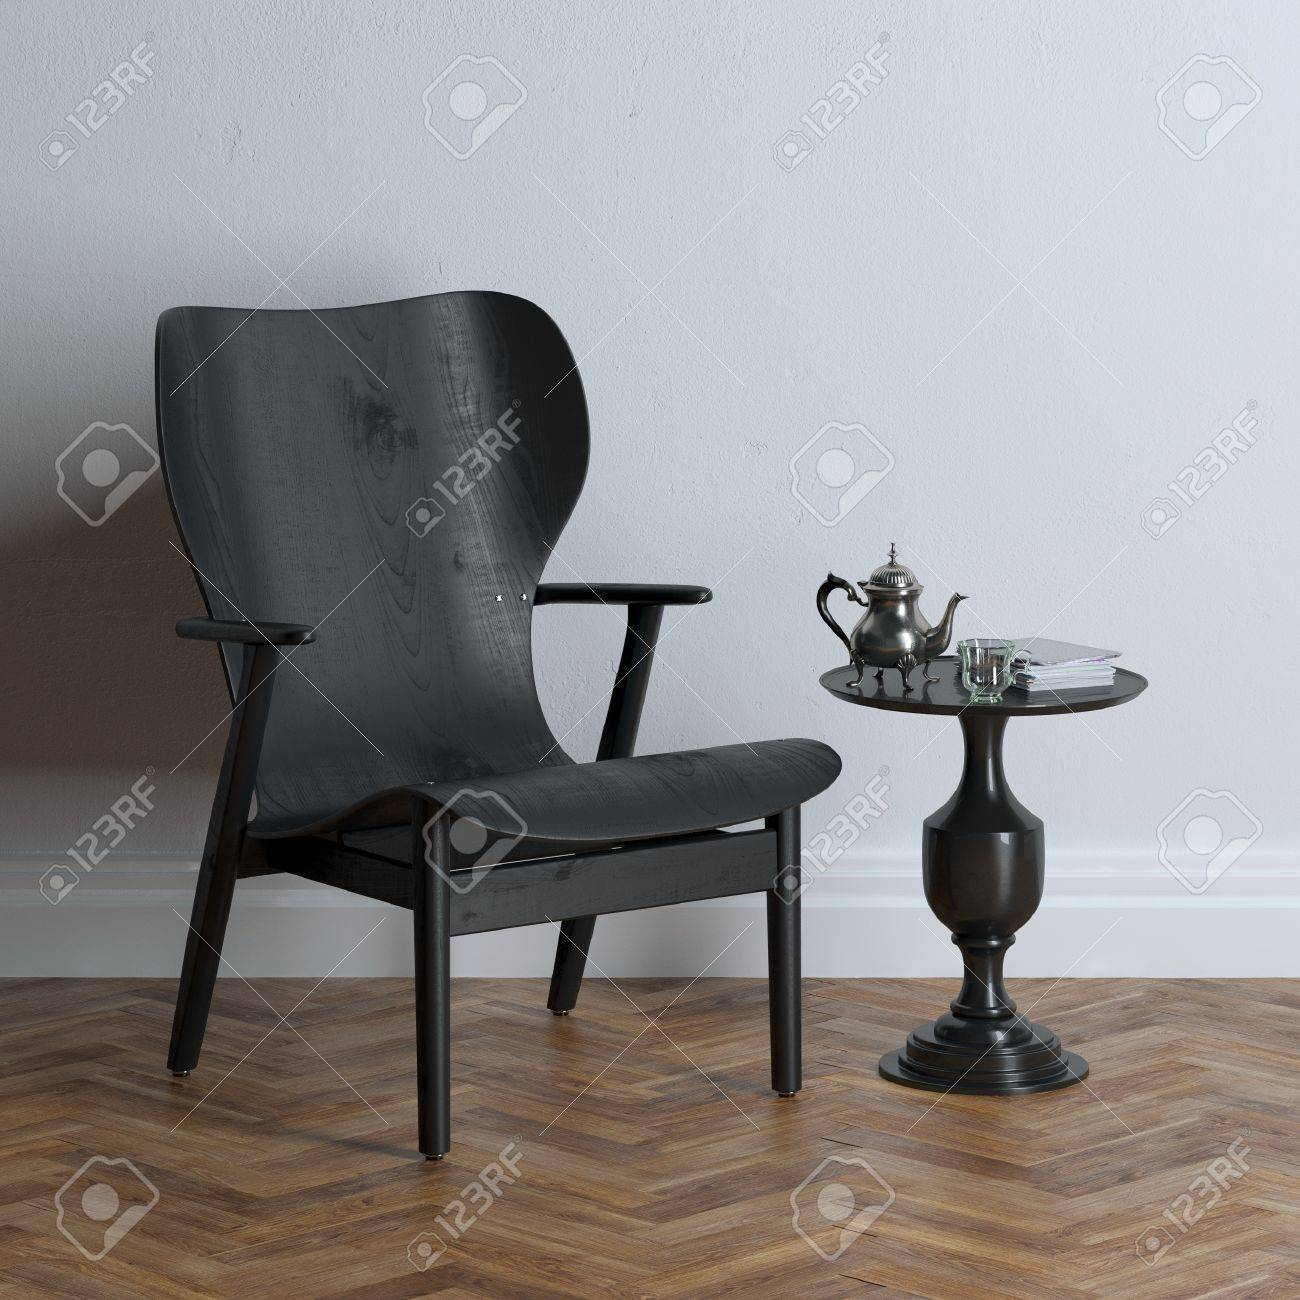 New black wooden chair in classic interior design - 35889706